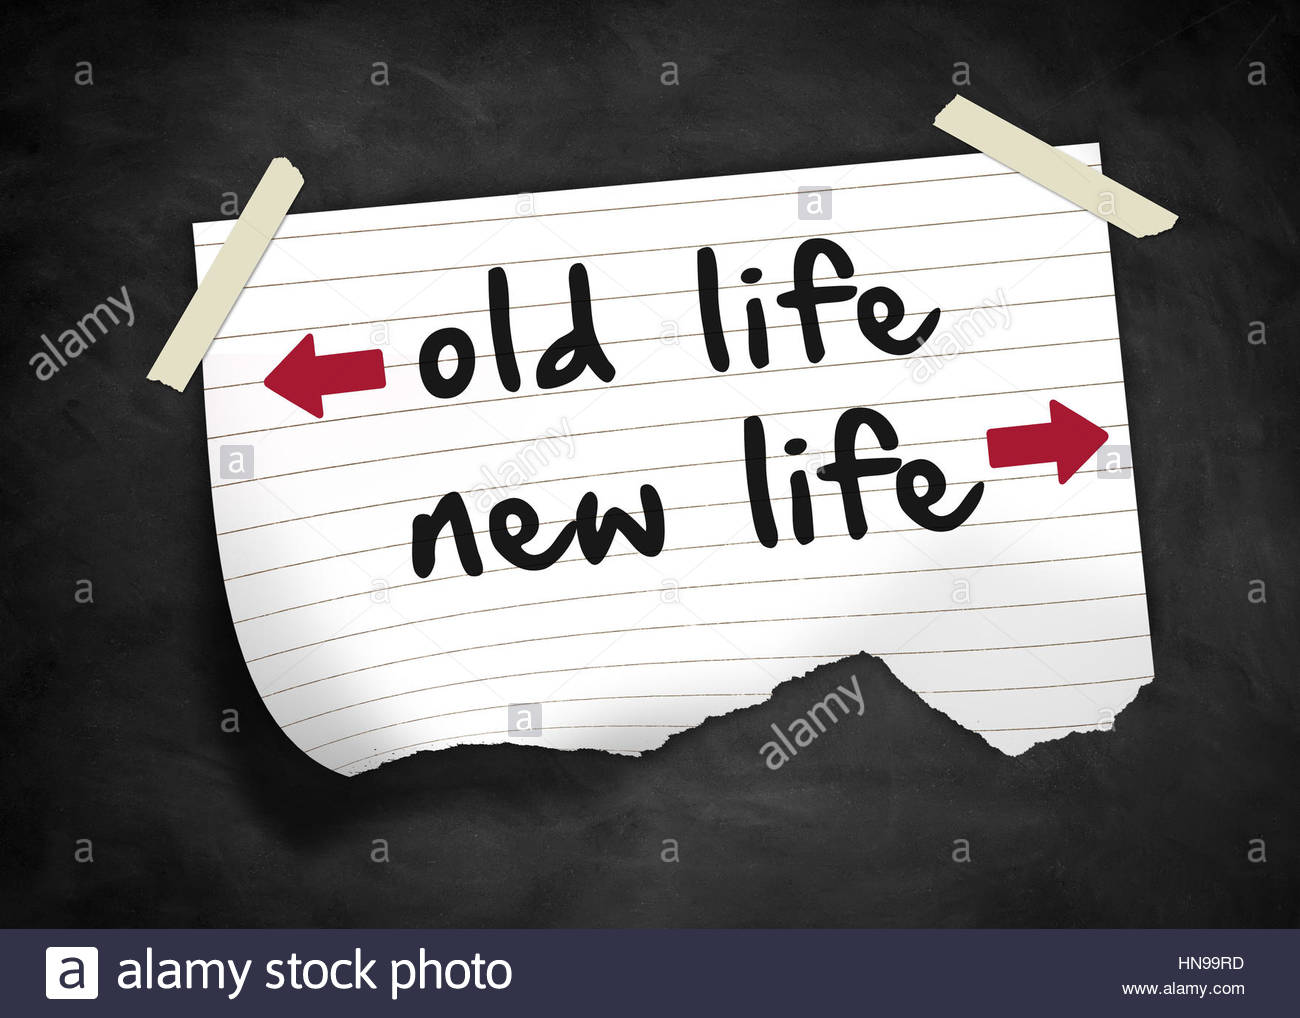 Old Life New Life - note concept - Stock Image